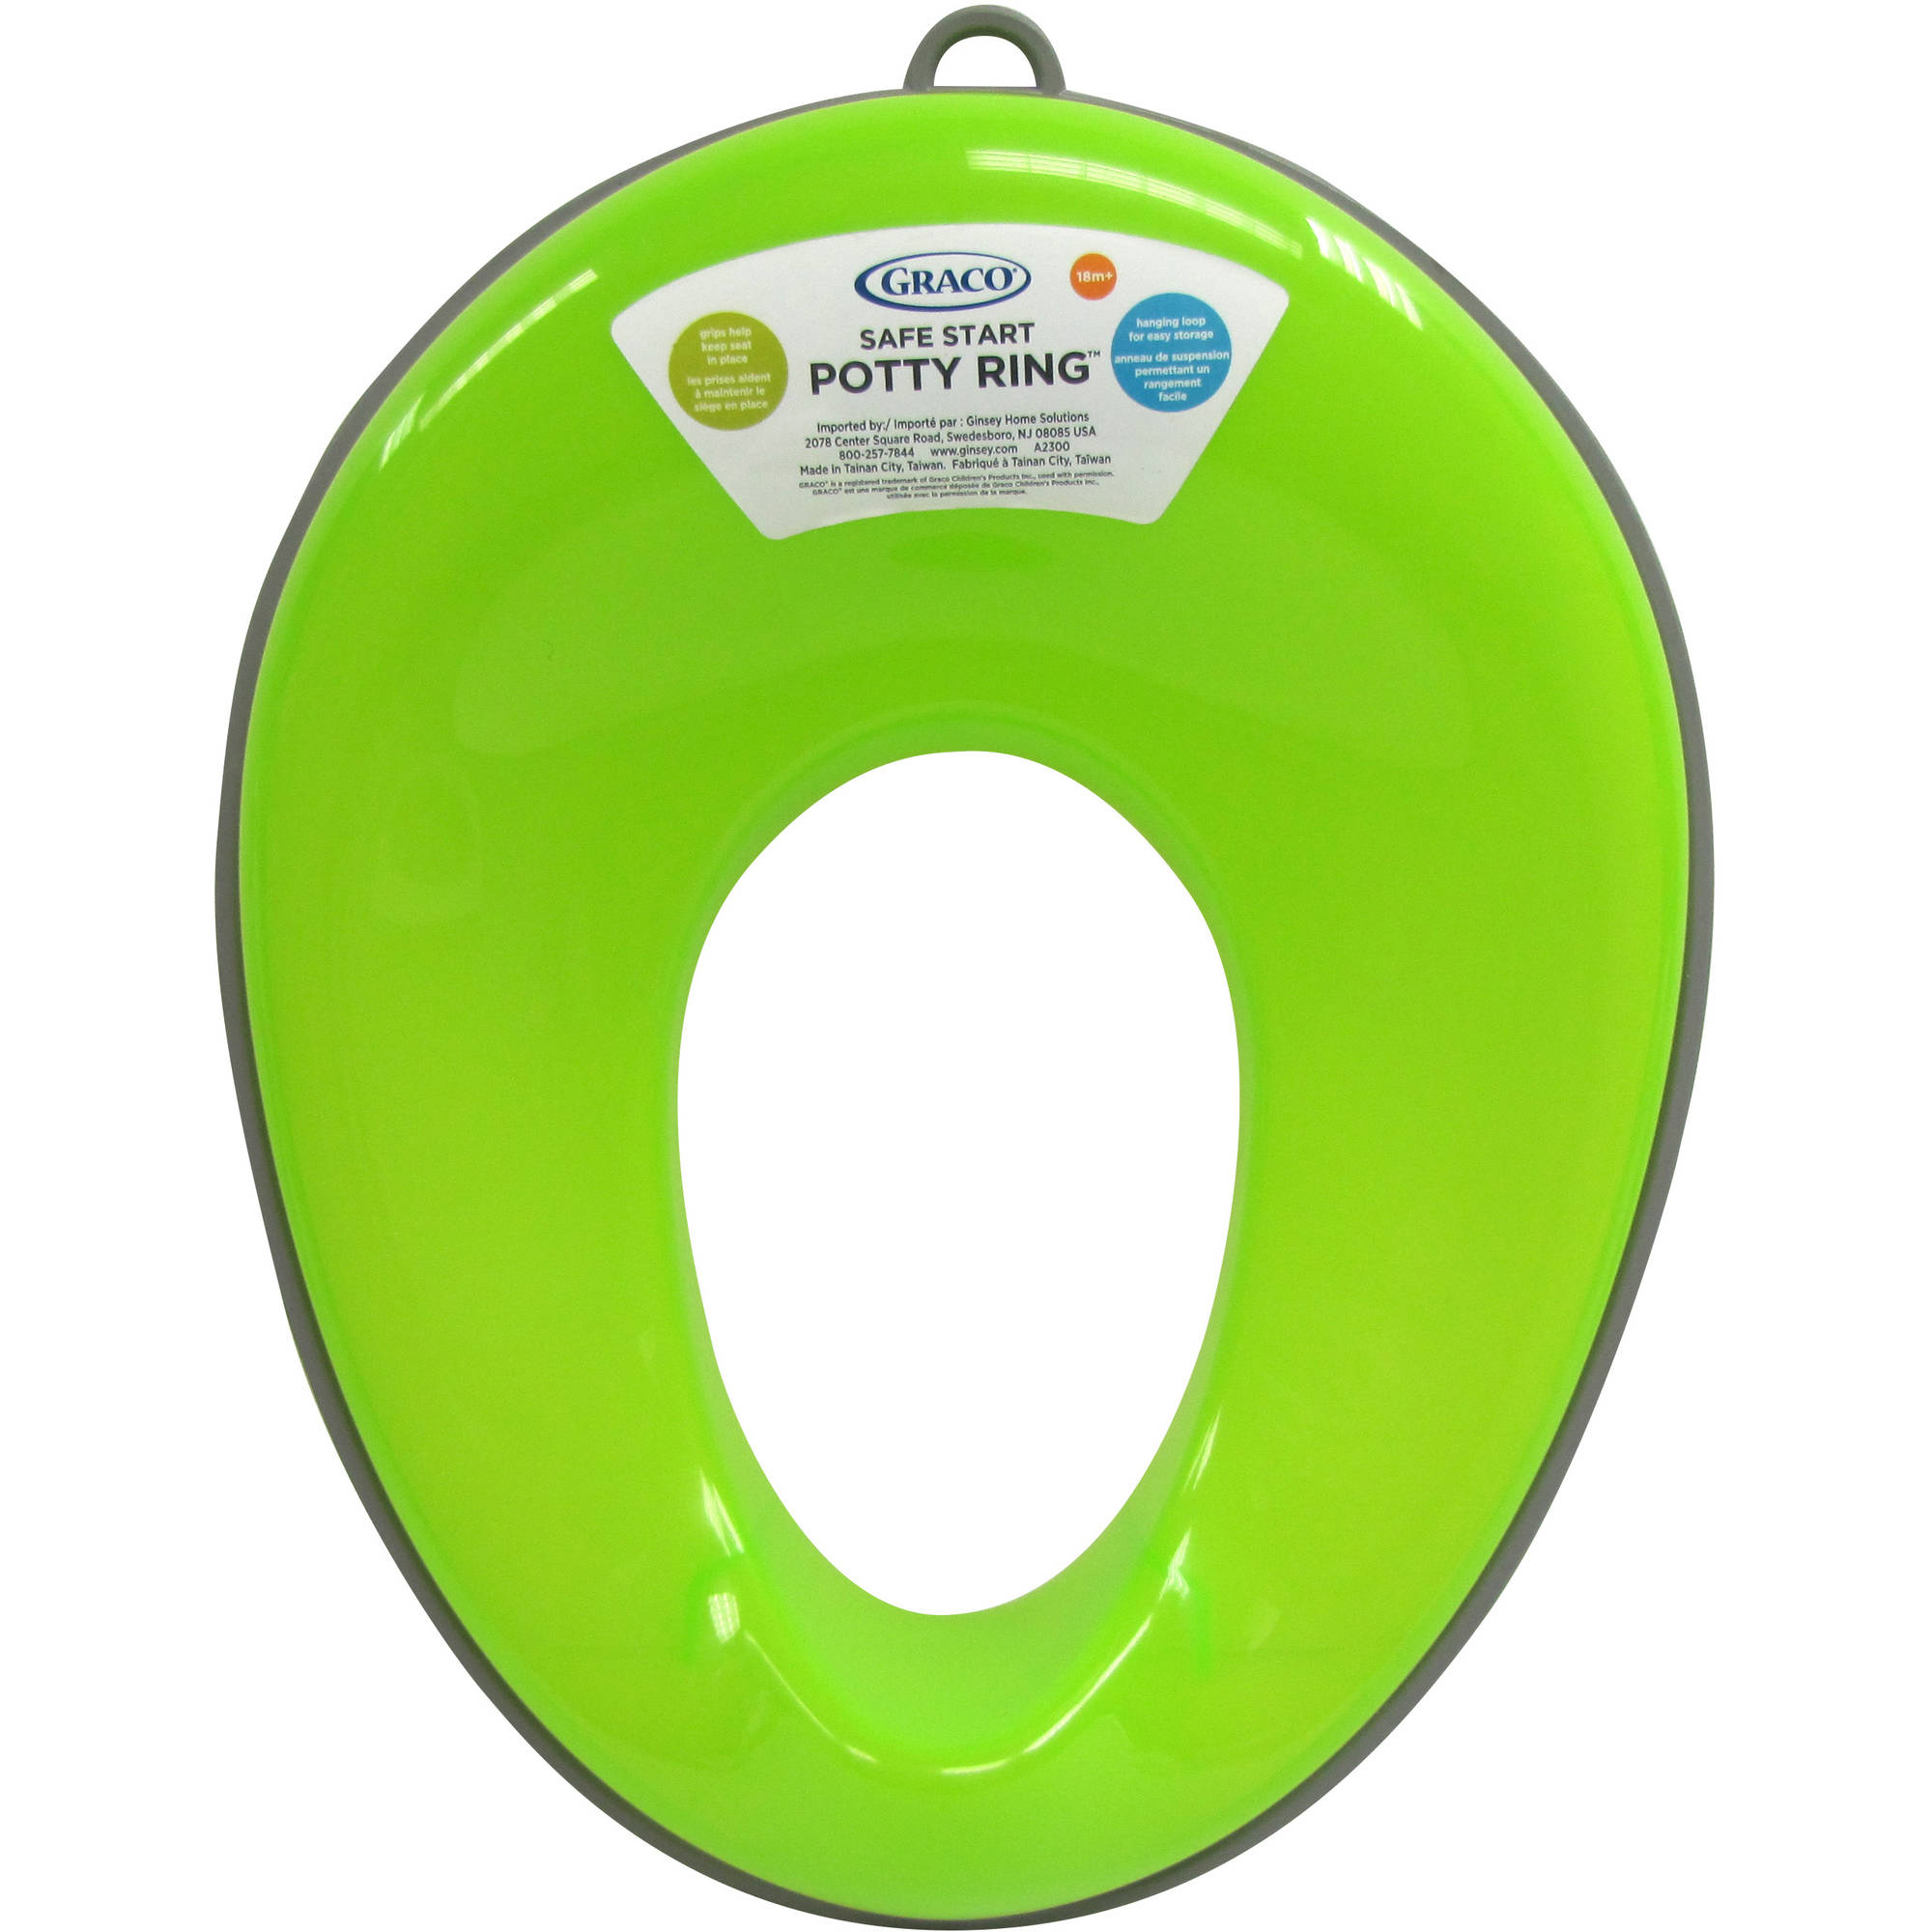 Graco Potty Ring, Green